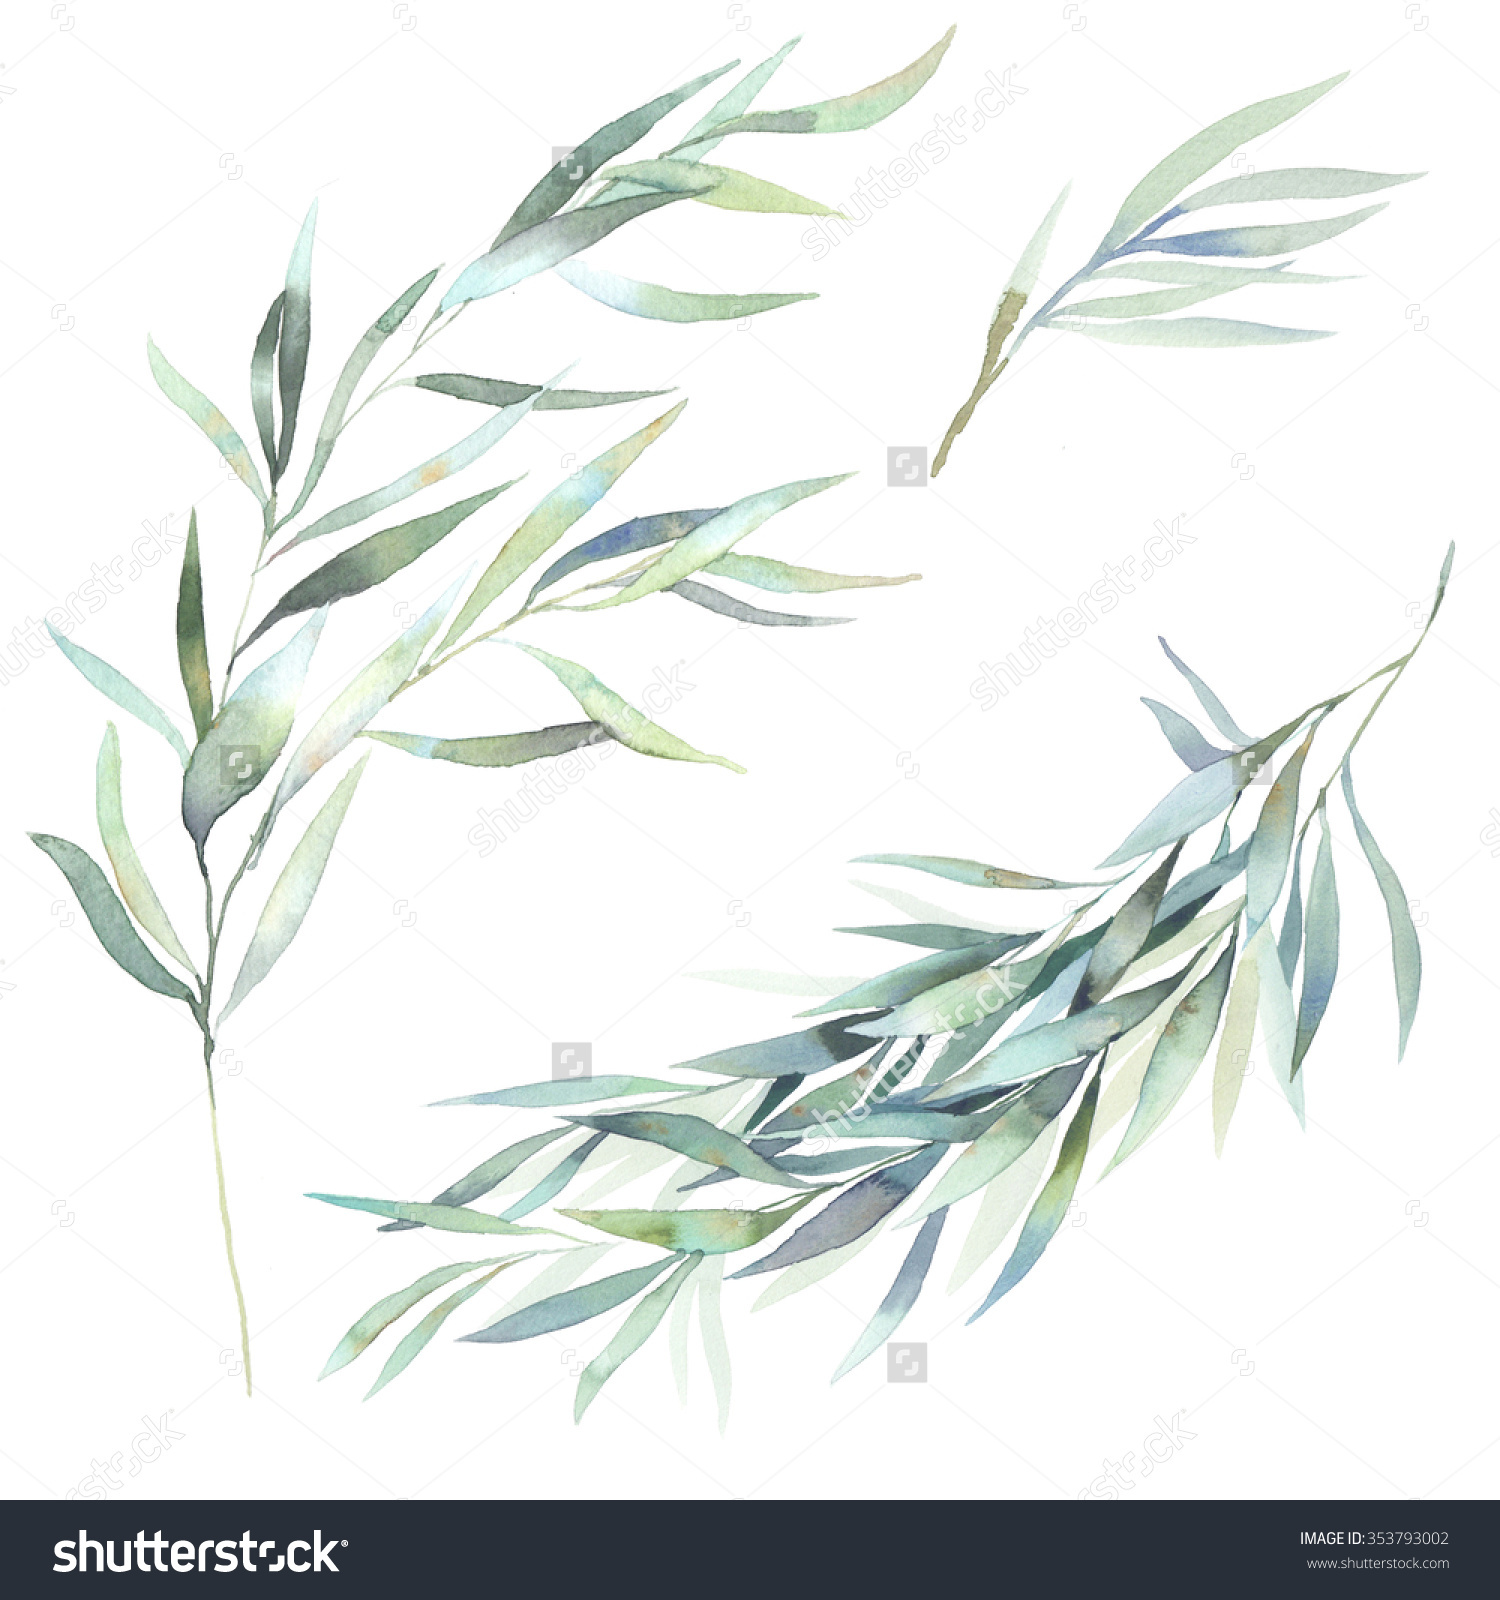 Branch clipart watercolor Leaves Hand Eucalyptus Elements Hand